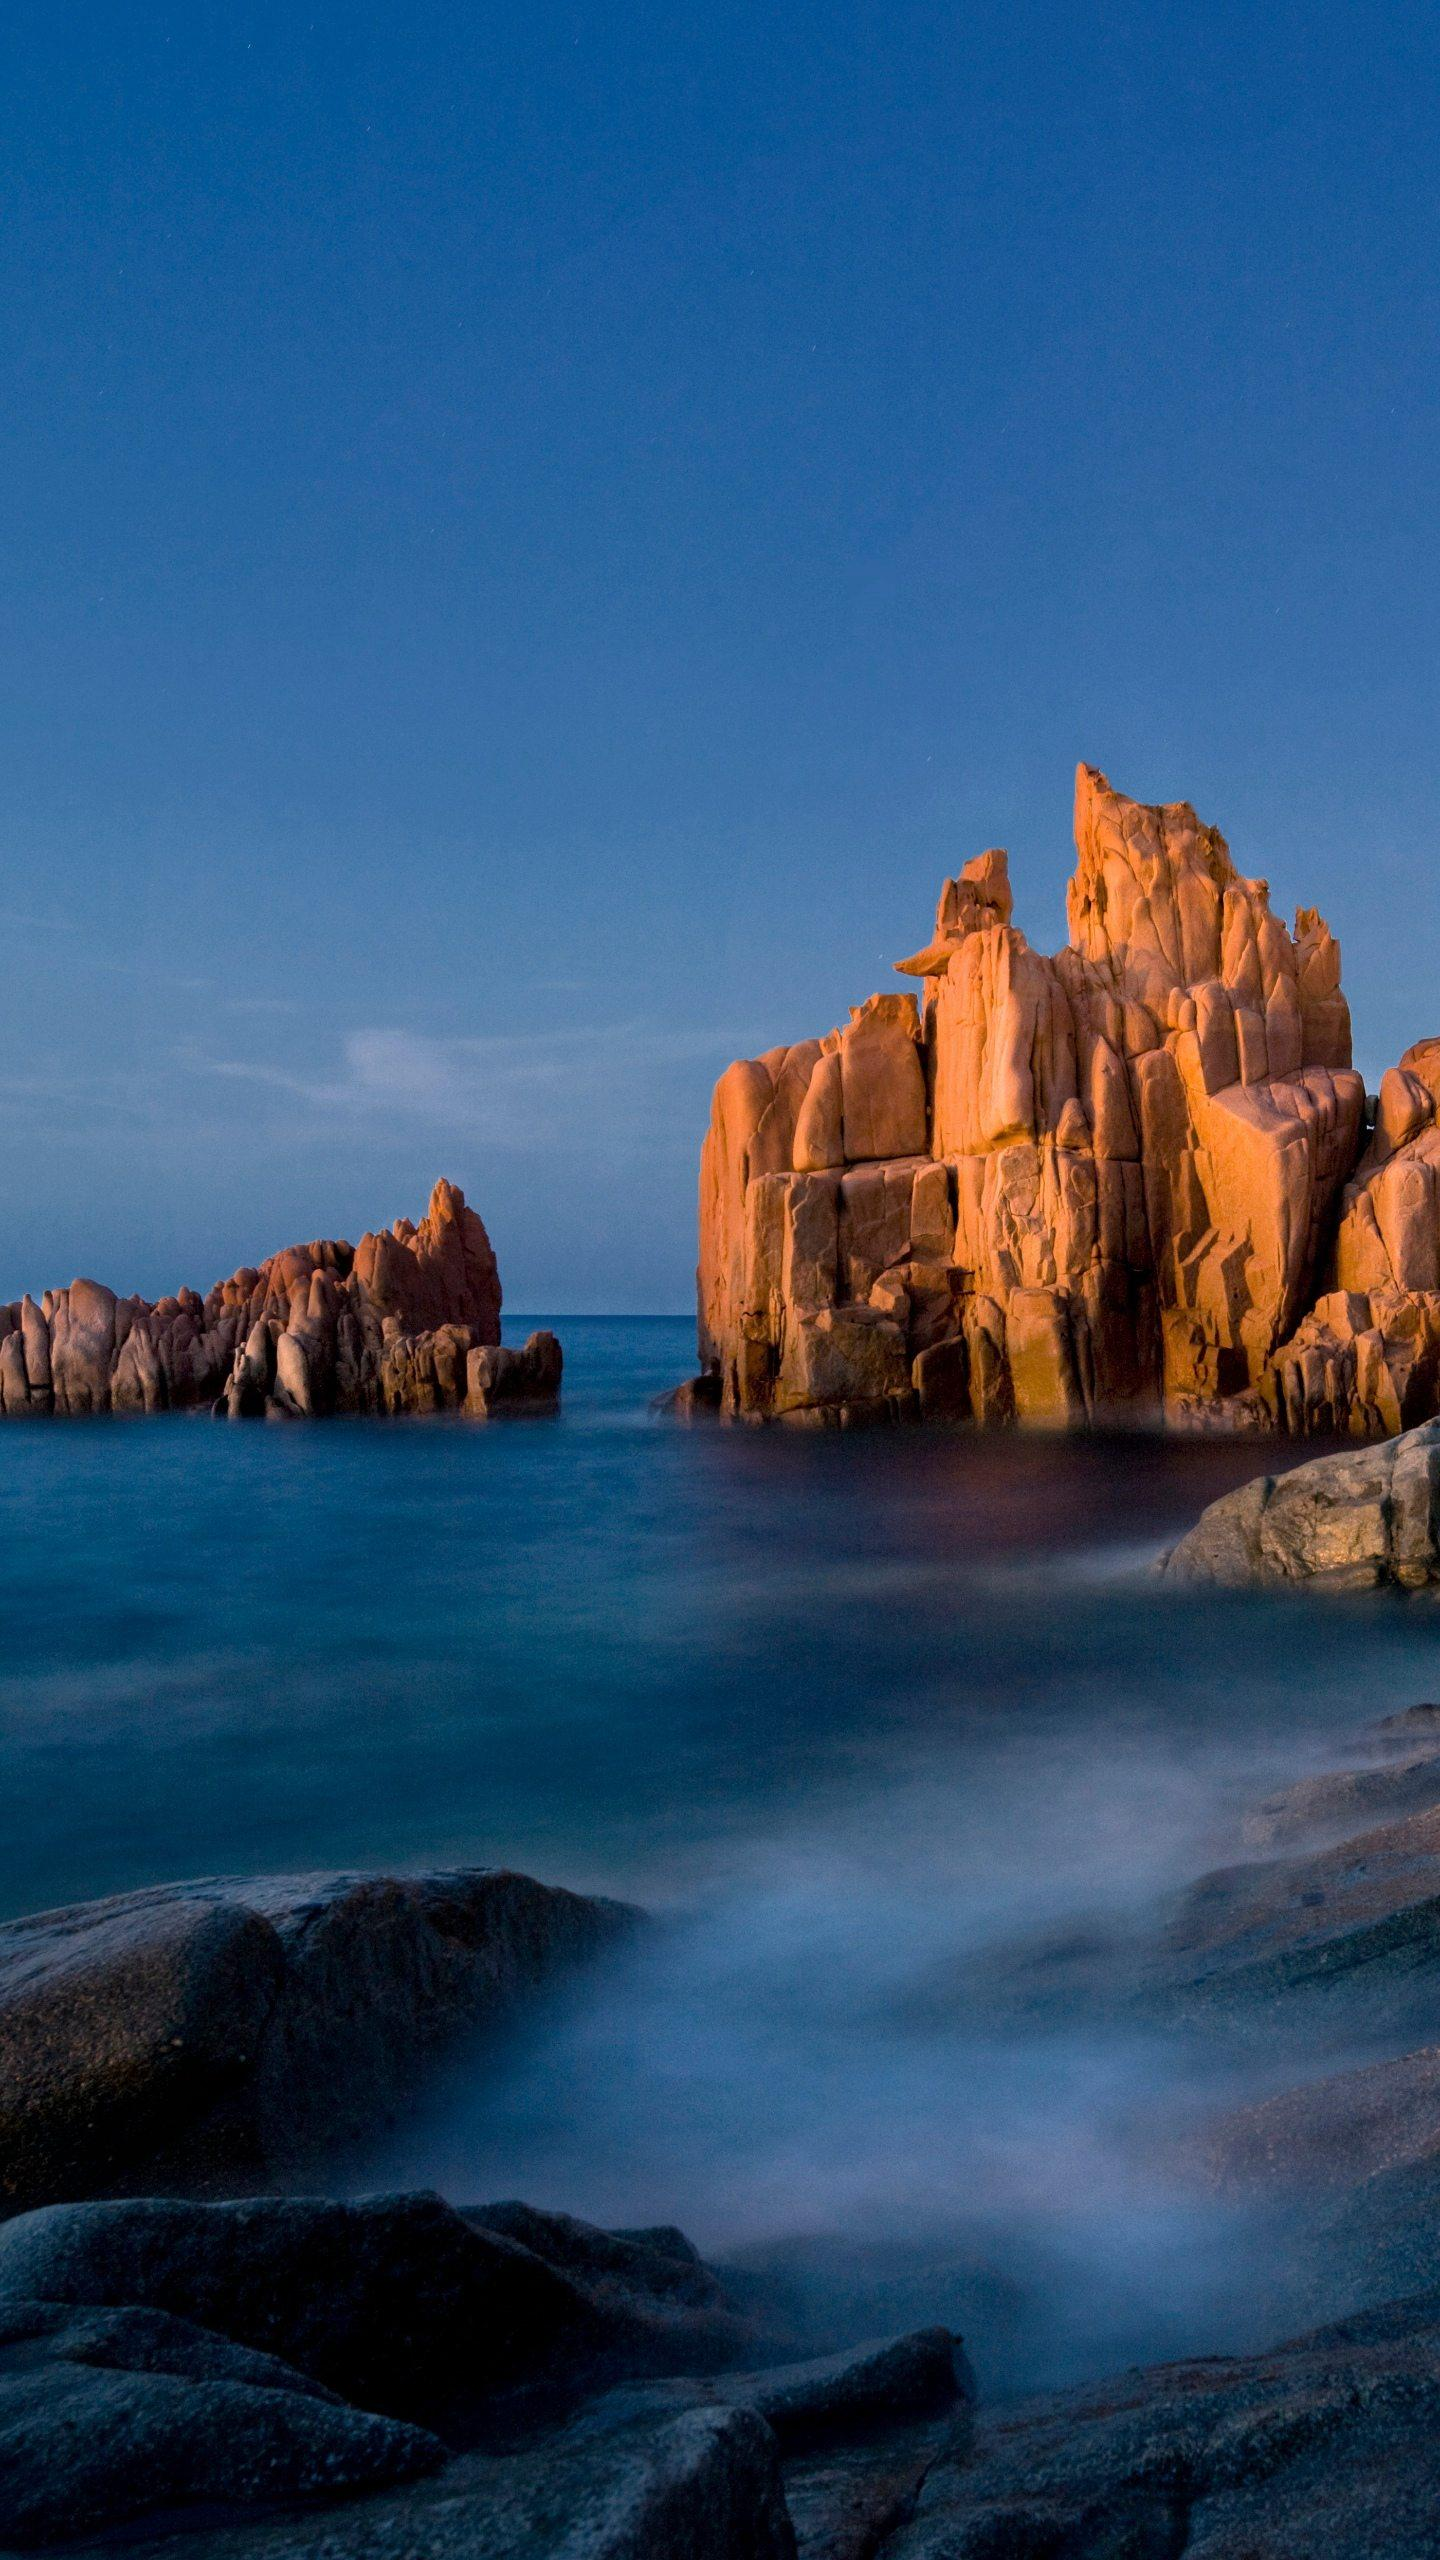 Meet Sardinia. Sardinia is the natural and original second largest island in Italy, with a different charm from other places, leisurely and comfortable.